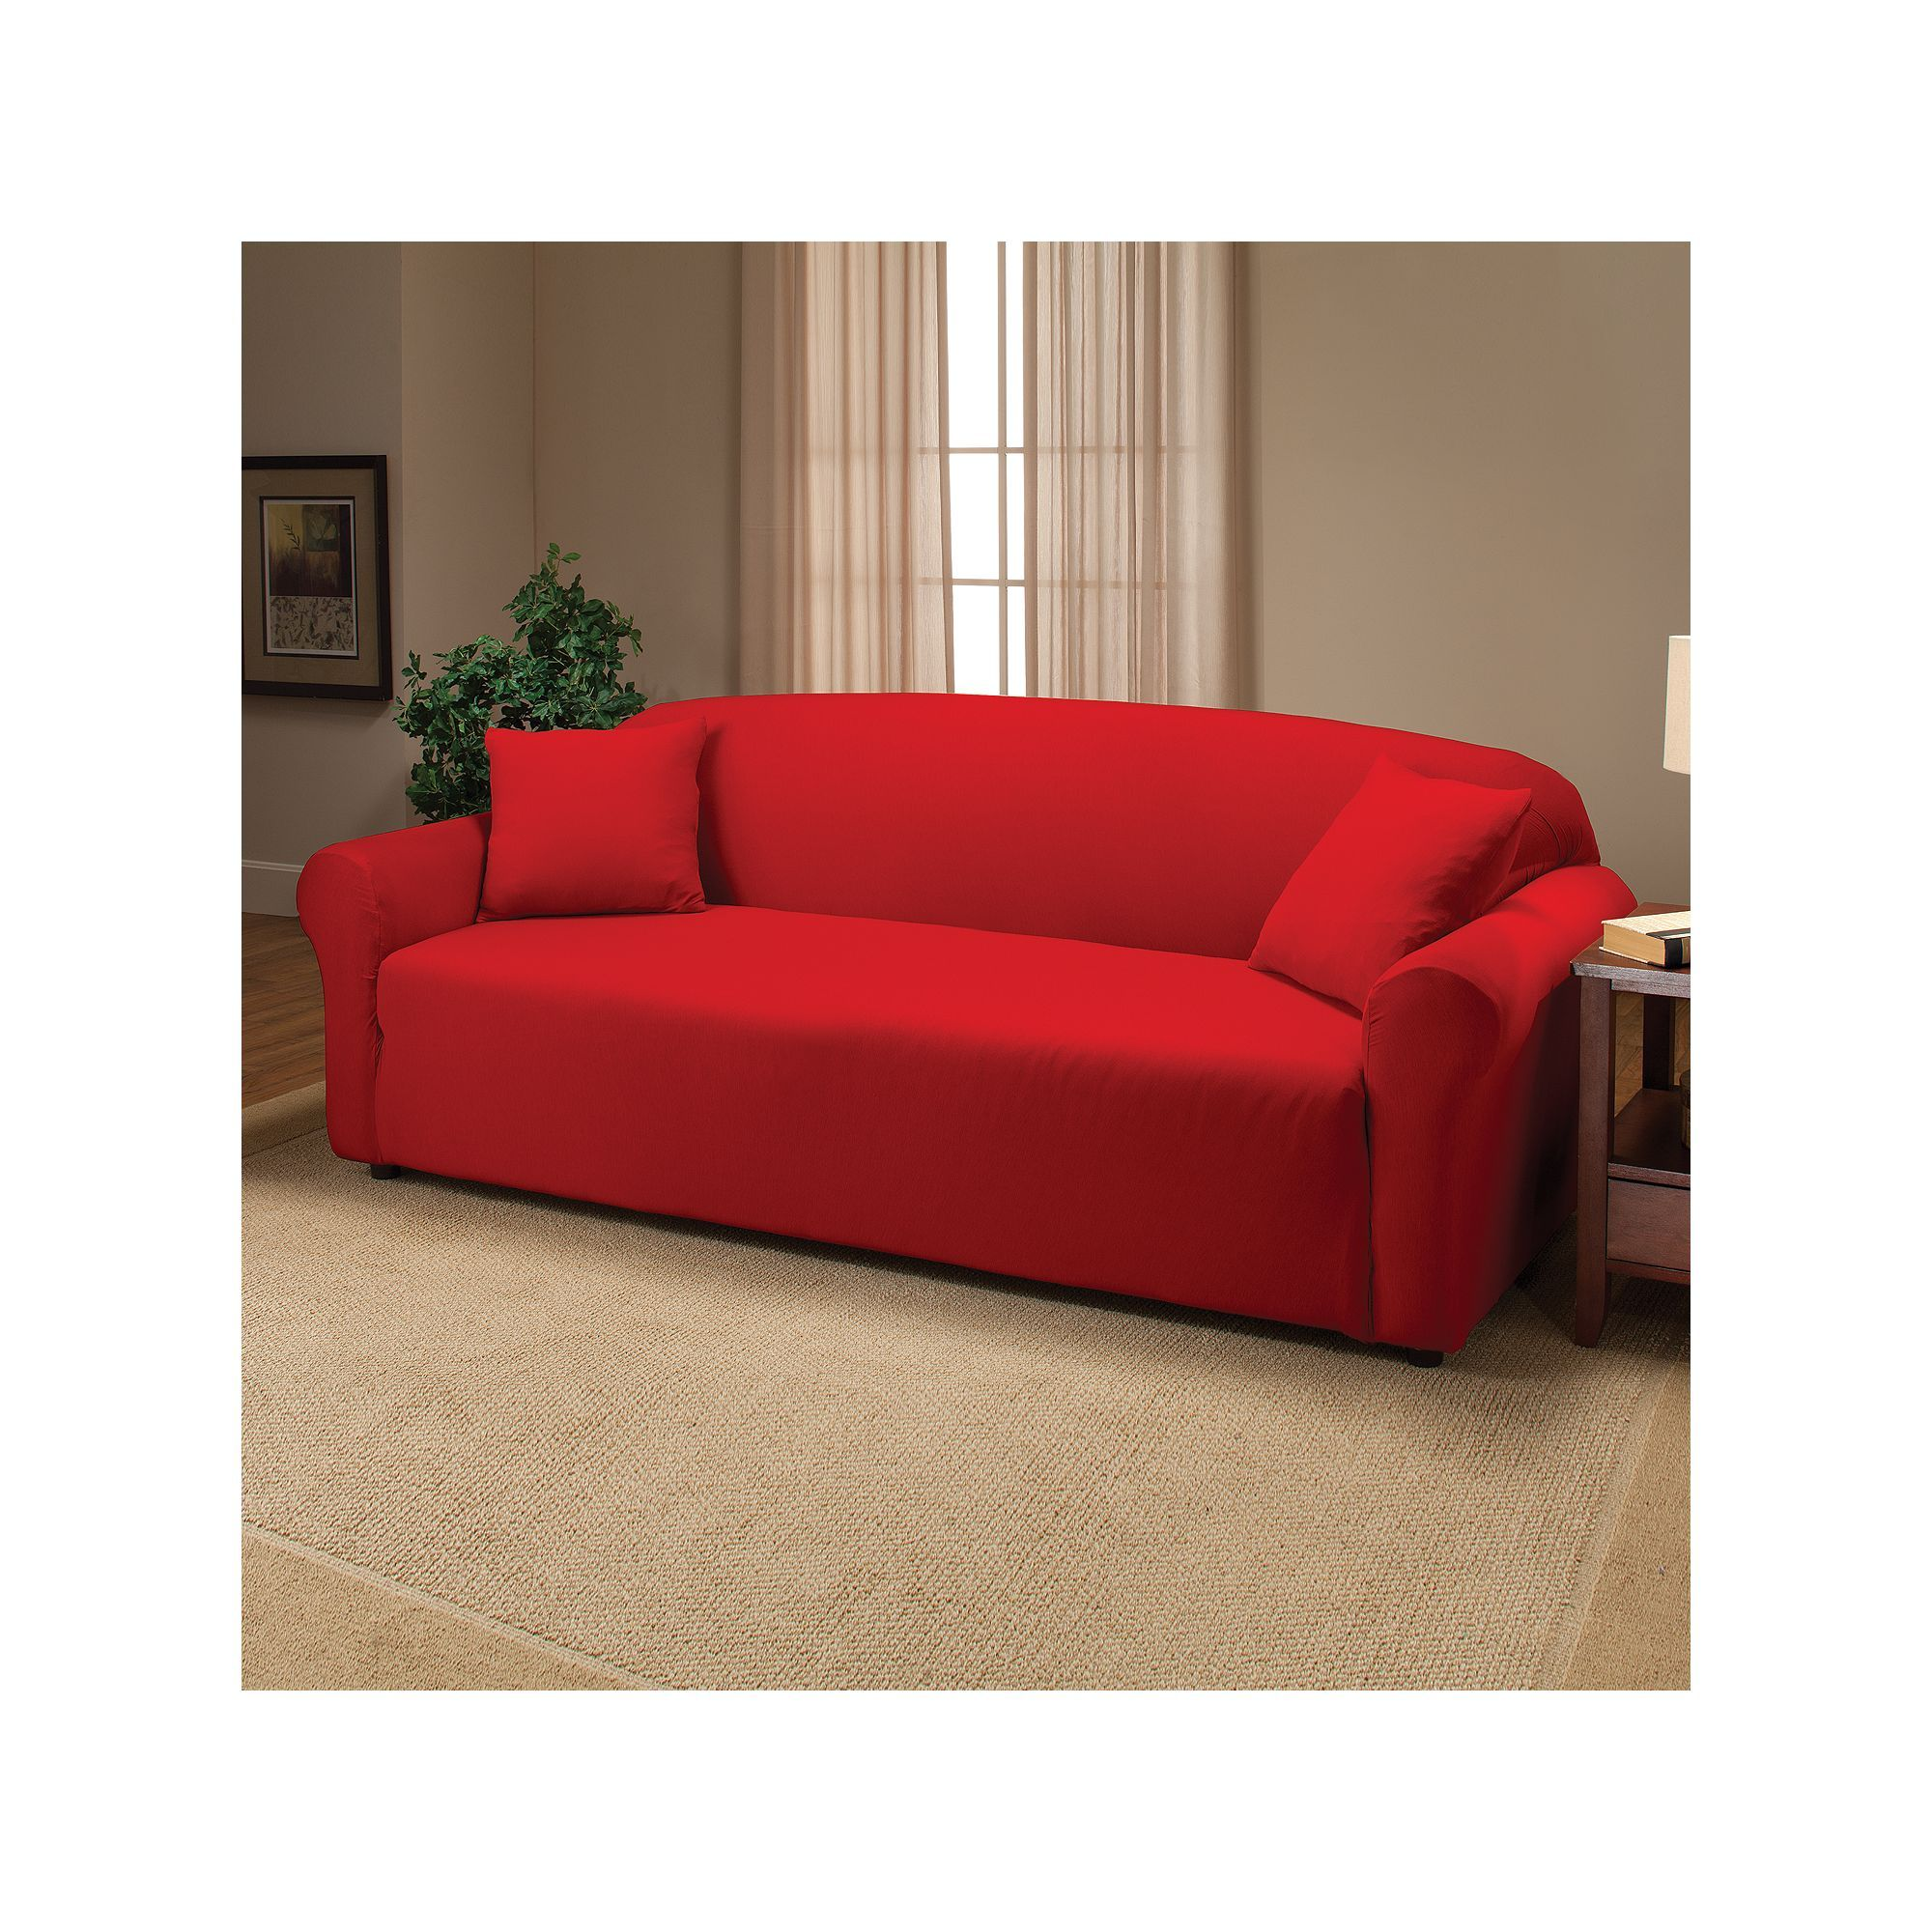 kohls chair covers how to sew spandex sofa slipcovers couch 2 furniture